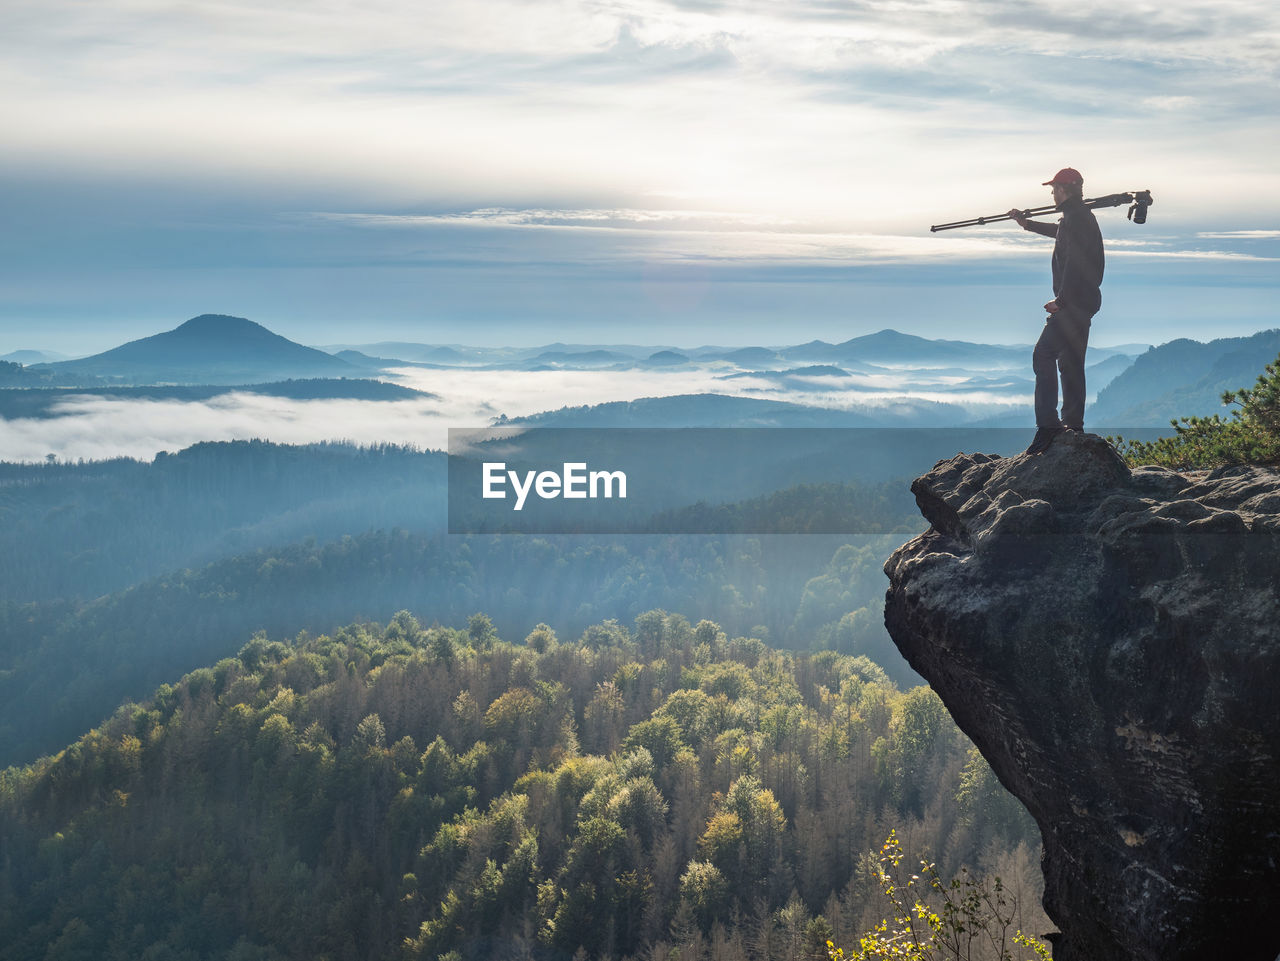 Nature photographer carry camera with tripod on his shoulder and look from mountain cliff to mist